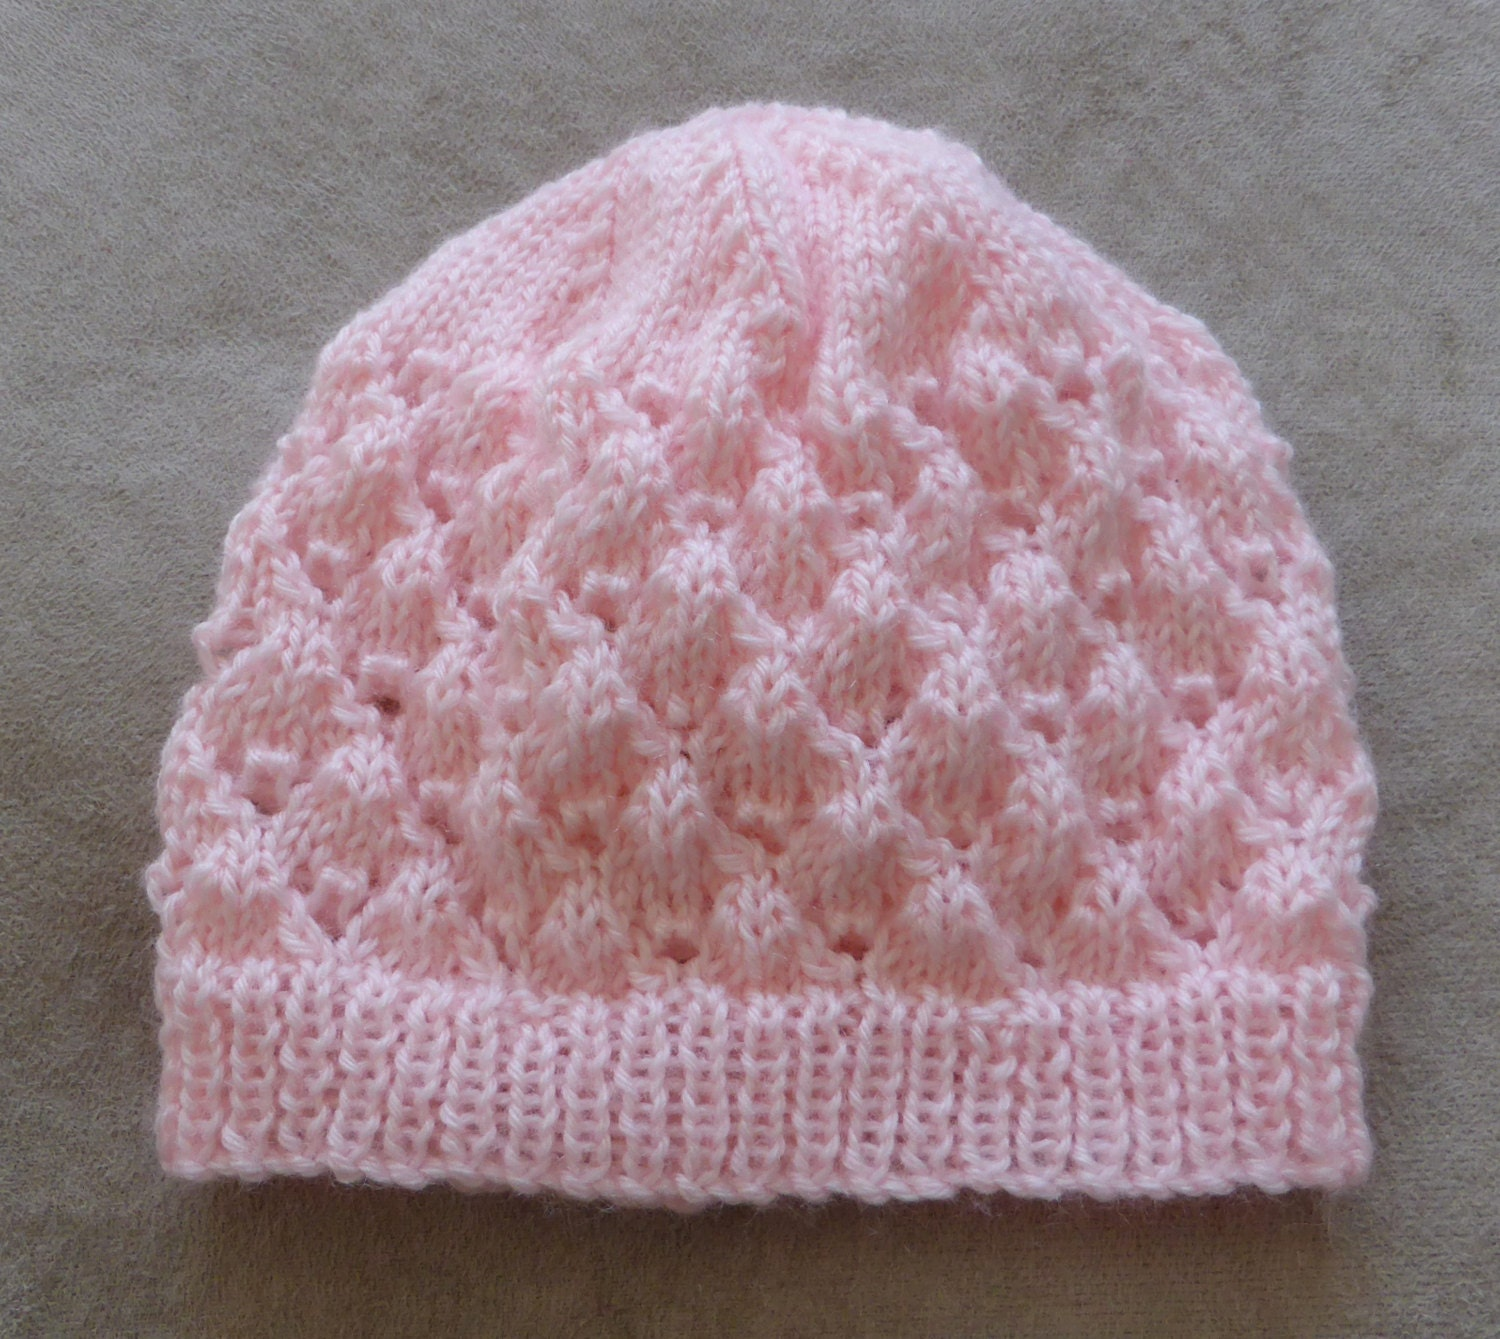 Toddler Beanie Knitting Pattern : Babies 4ply lace Beanie PDF knitting pattern Molly